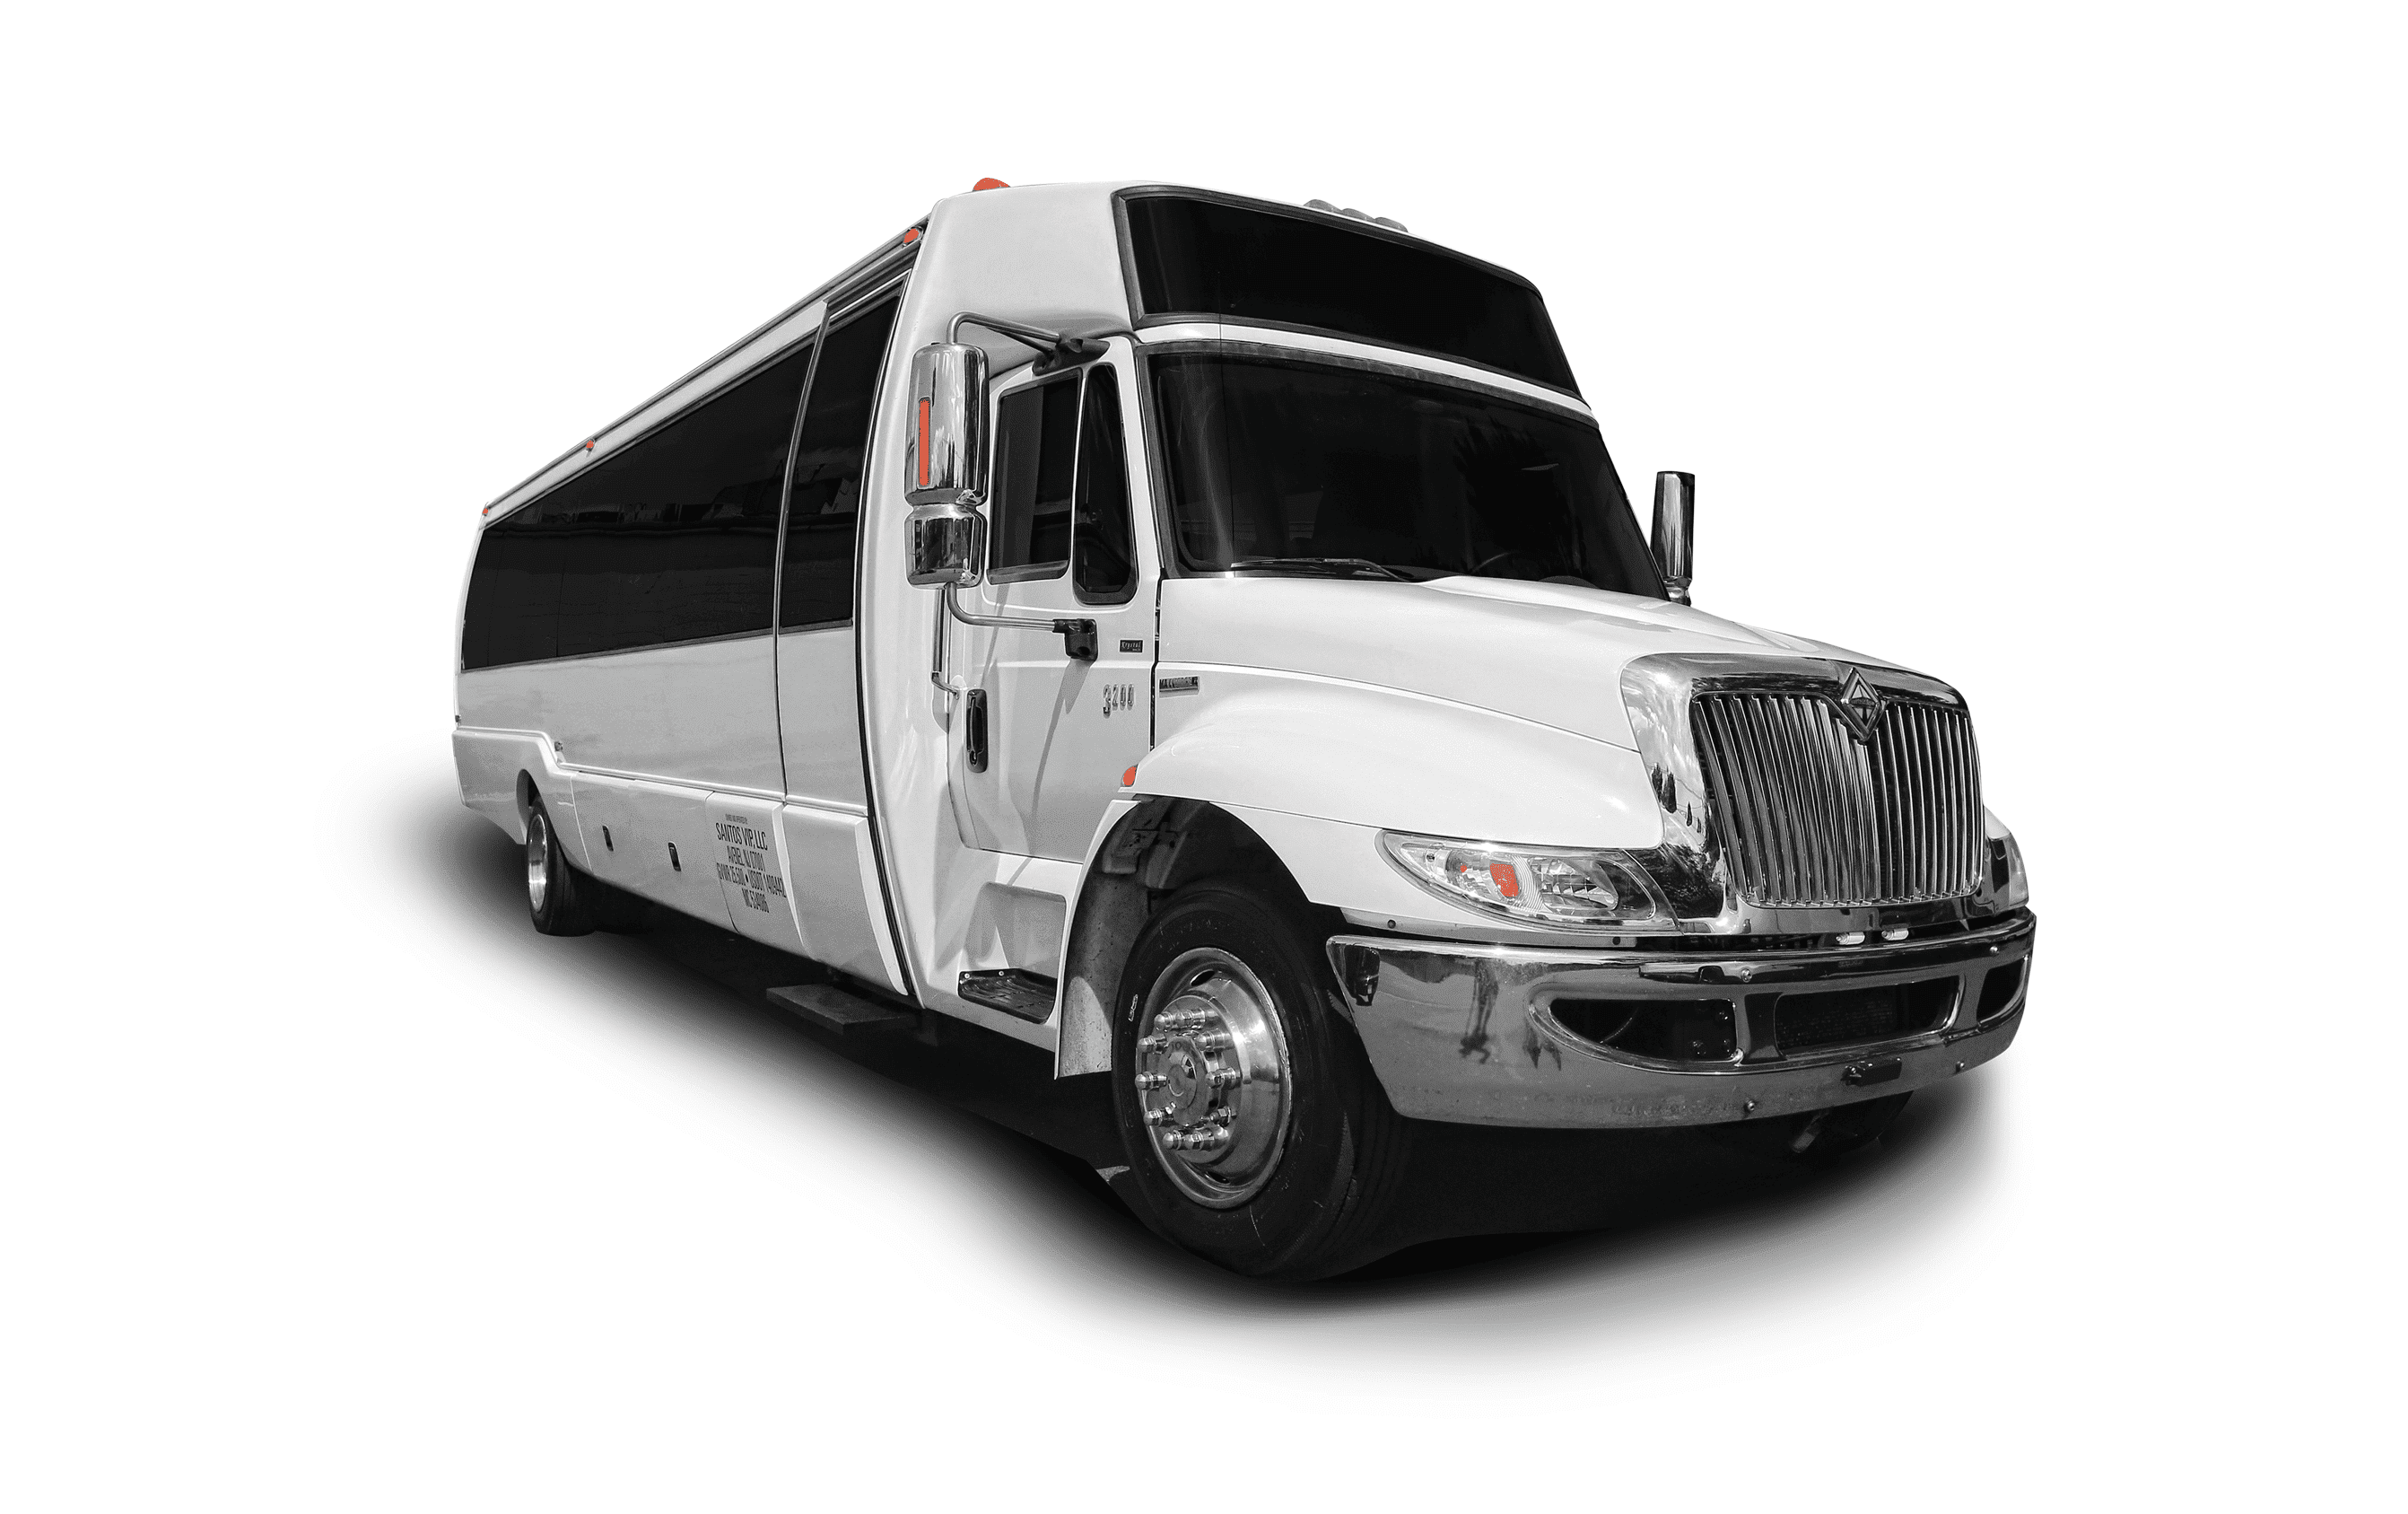 28 passenger VIP Limo Coach Party Bus rental for tours to wineries in North & South Jersey